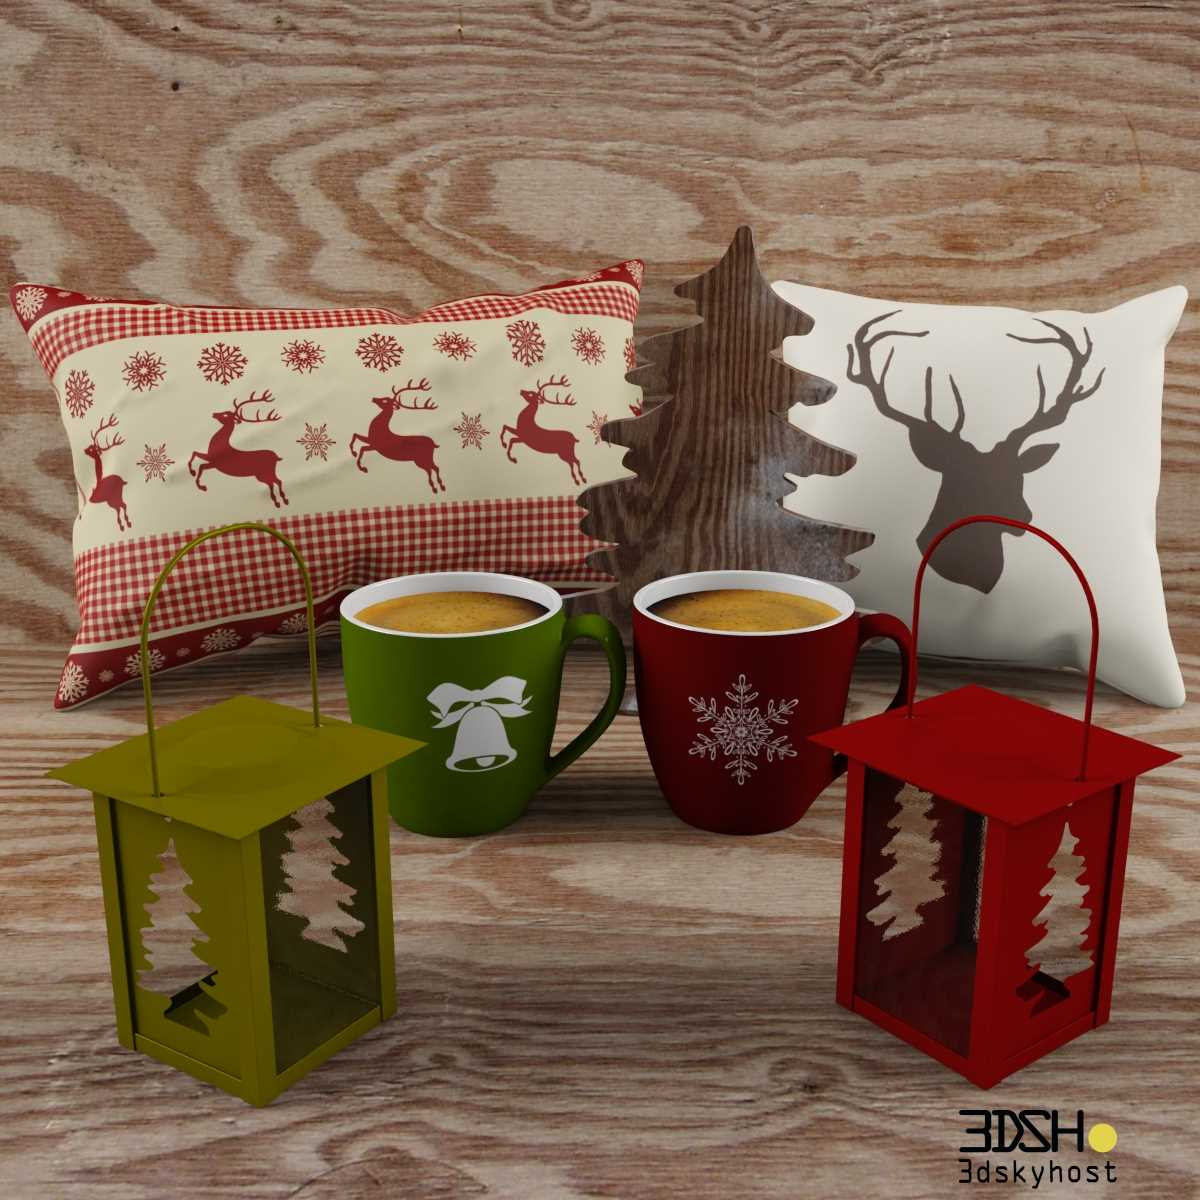 3D Model Christmas Decoration free download